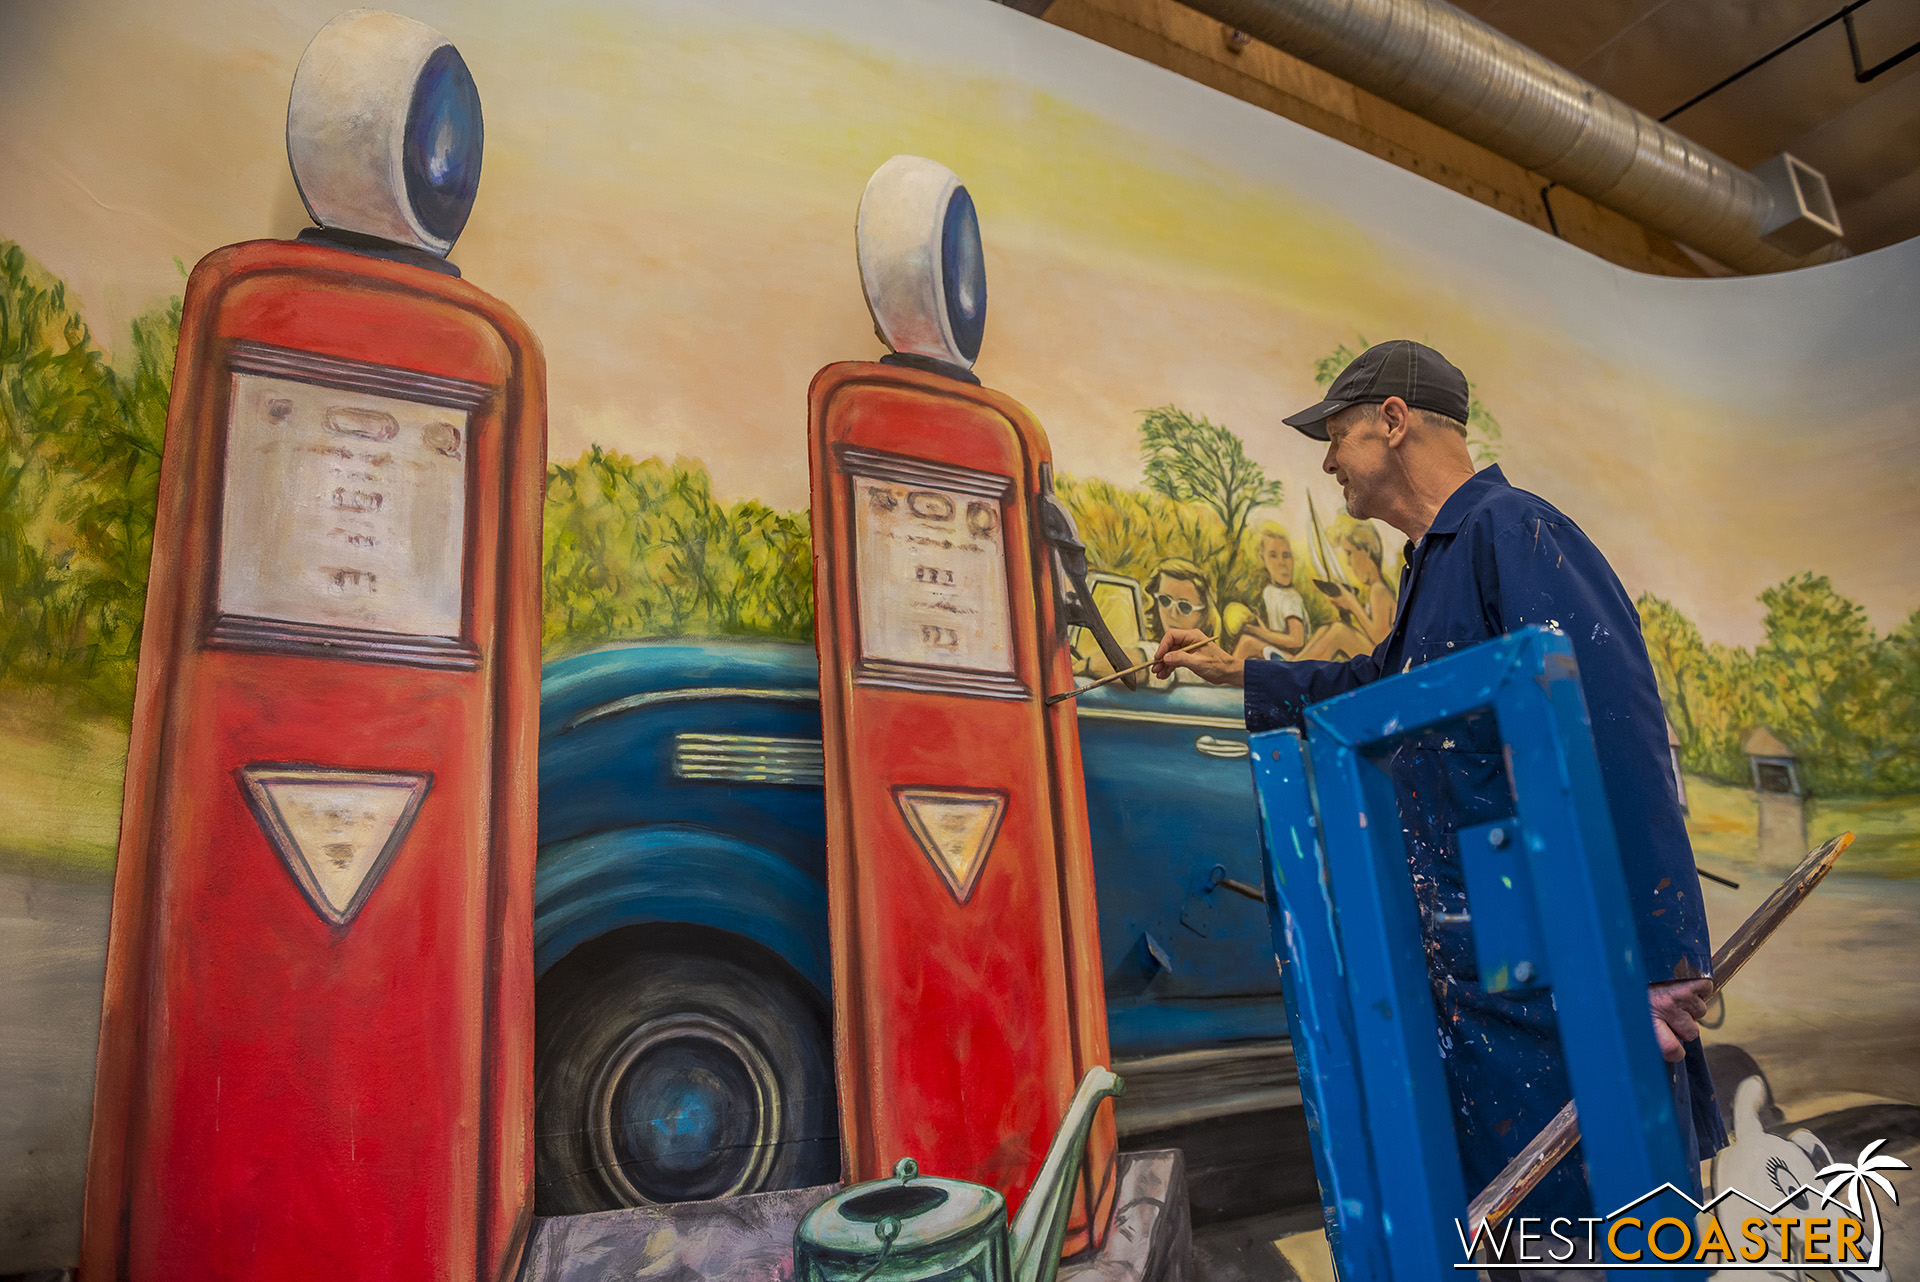 There are some artistic liberties taken.  For example, an extra gas pump is added to lengthen the scene.